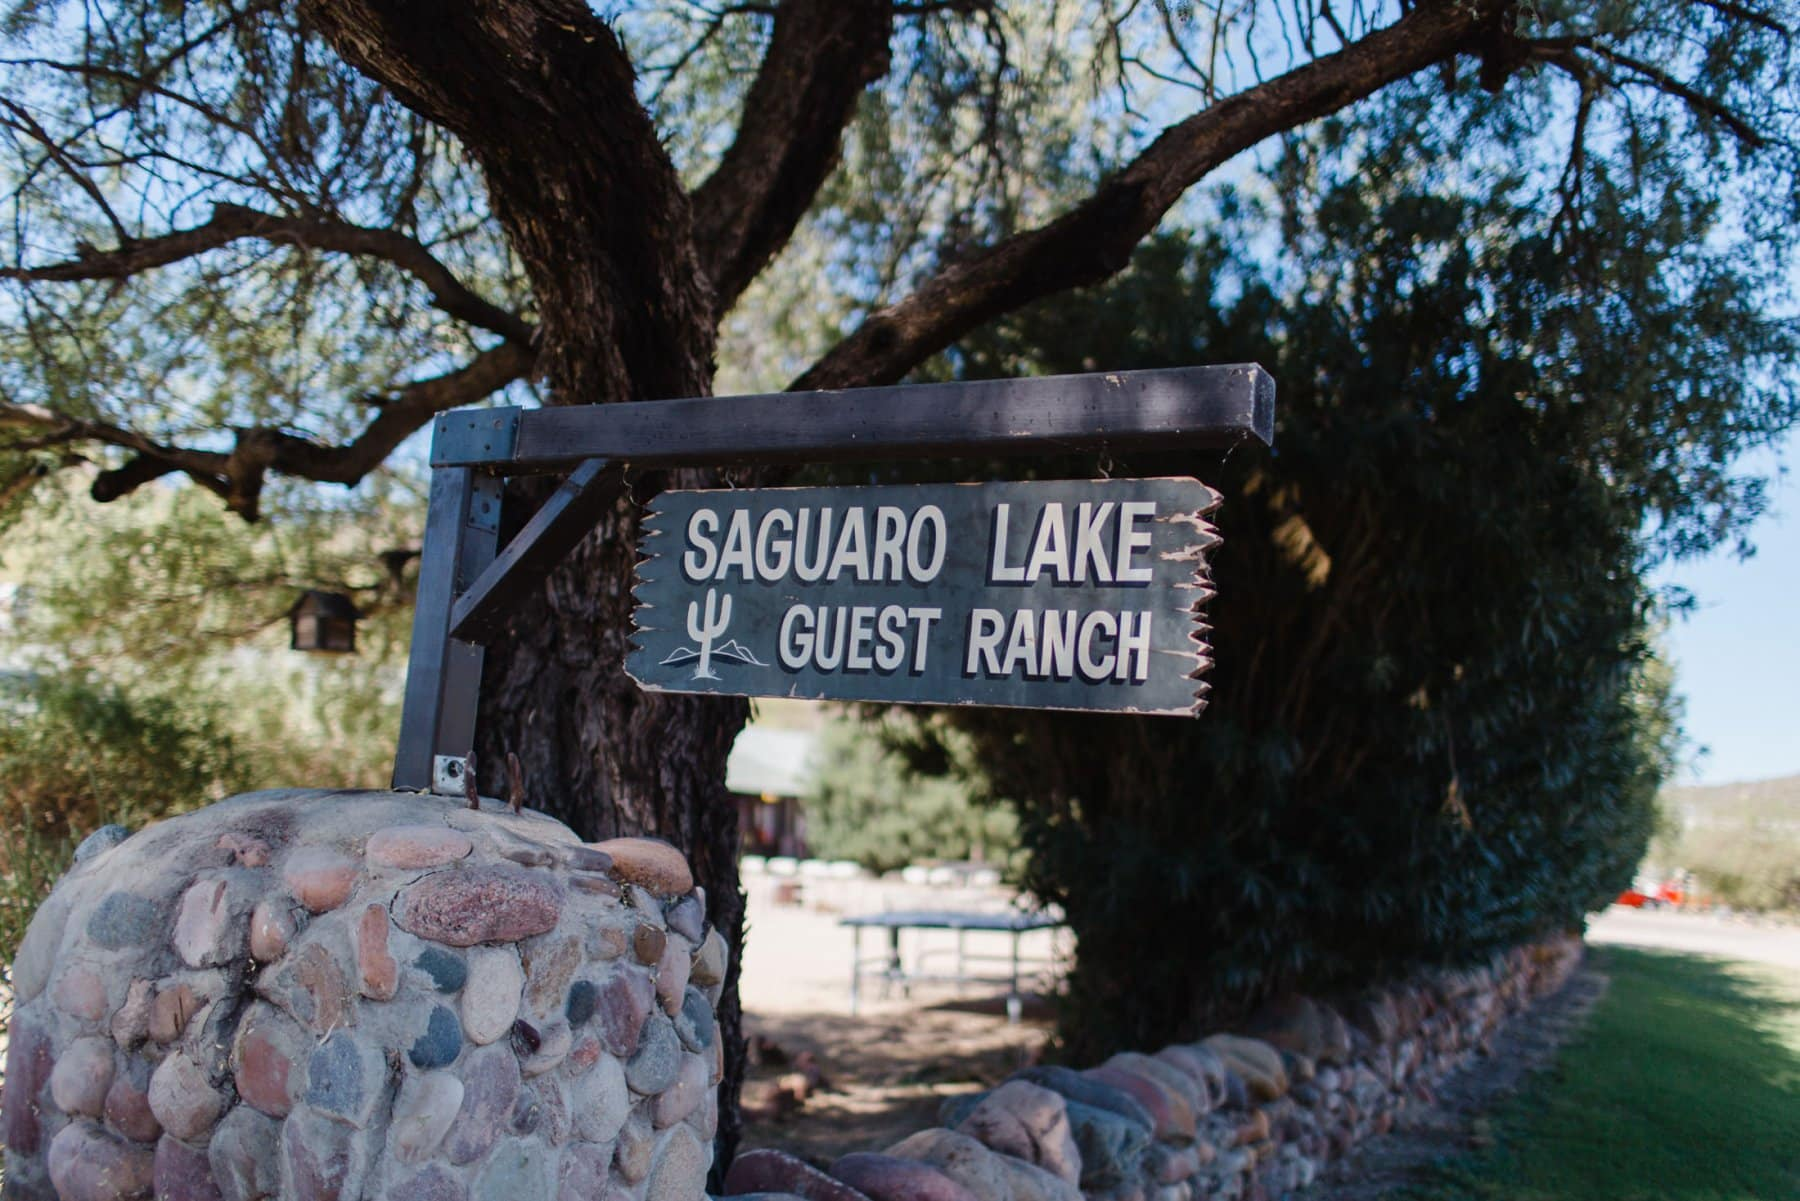 Saguaro Lake Guest Ranch sign